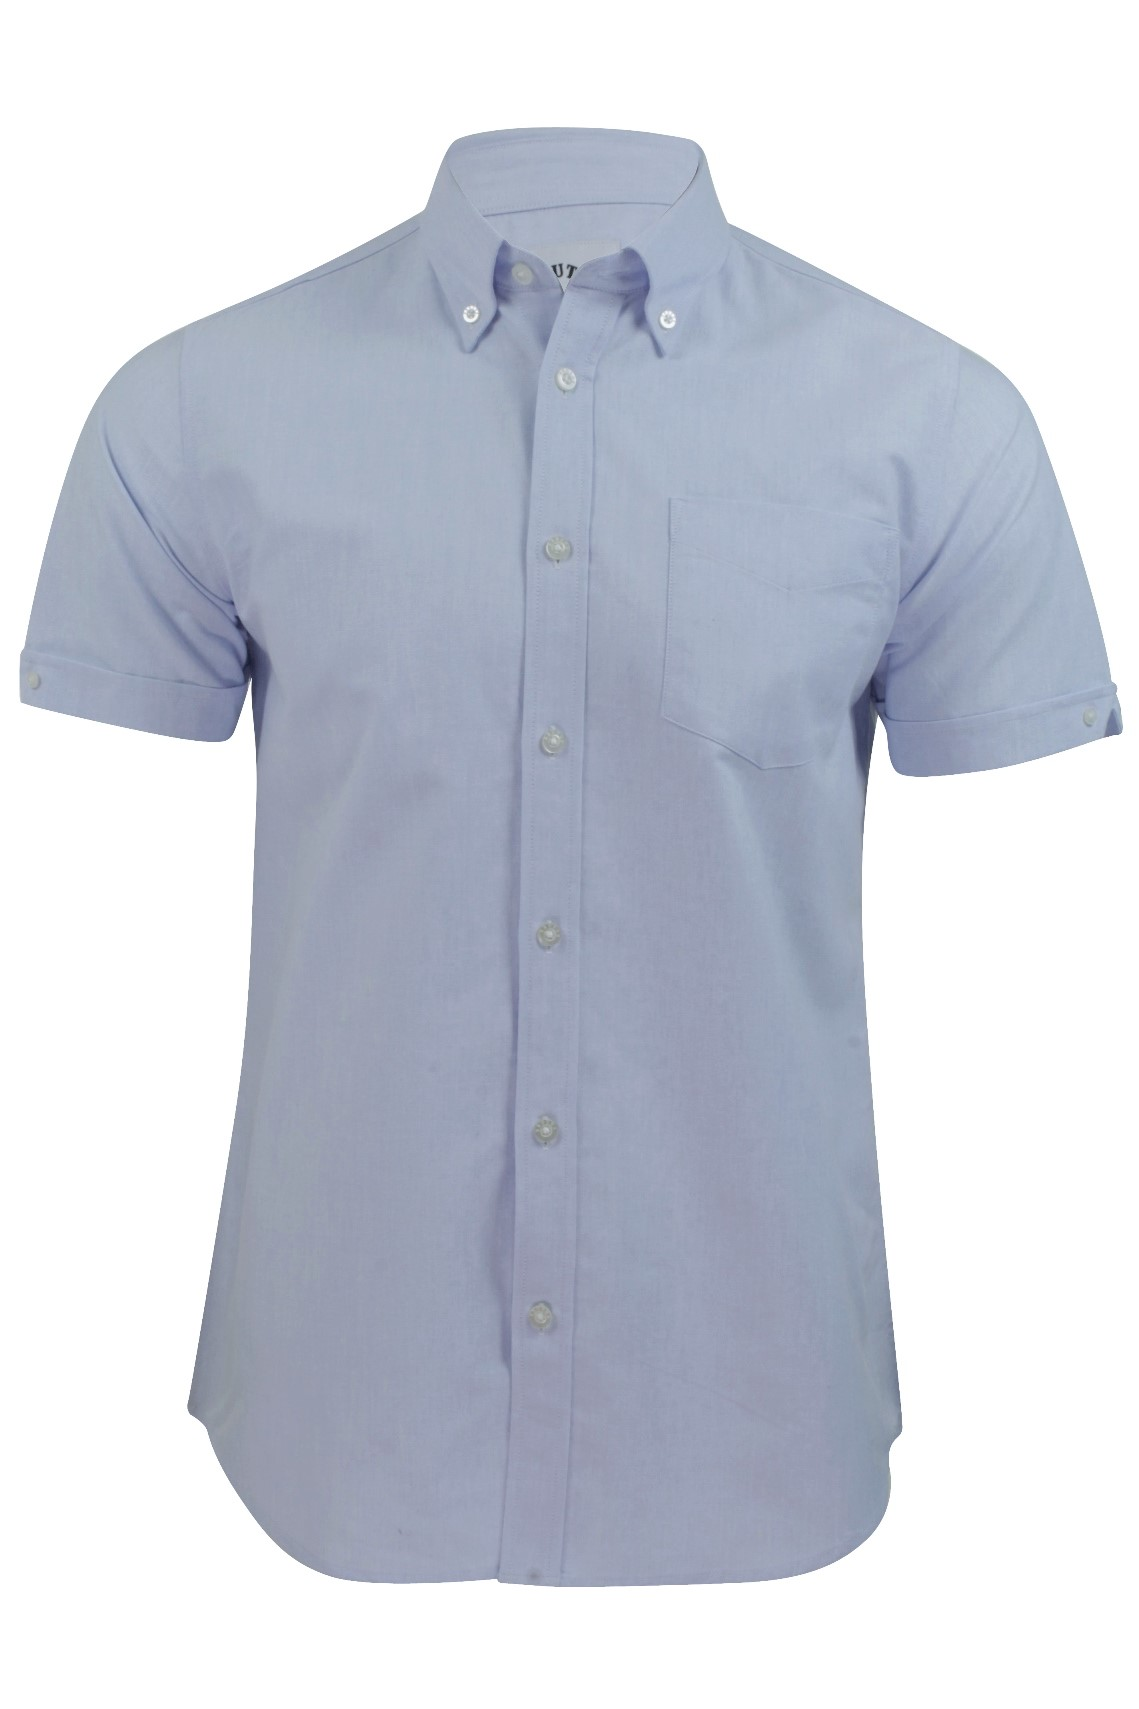 Mens Oxford Shirt By Brutus Short Sleeved Button Down